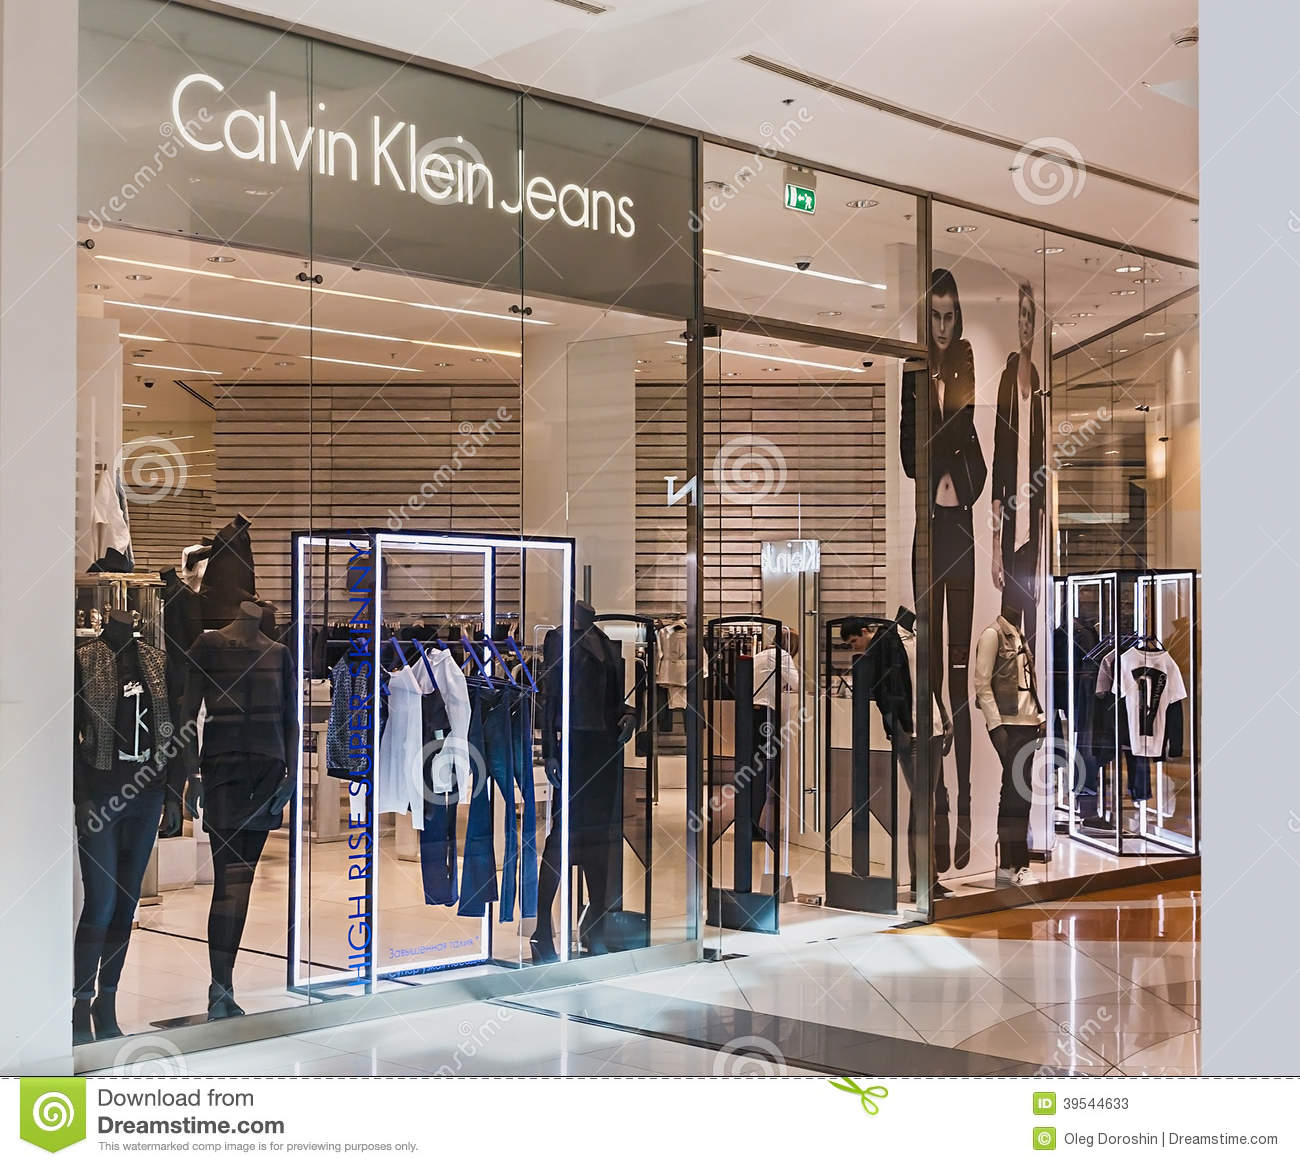 calvin klein store clothes in the mall metropolis editorial stock photo image of branding. Black Bedroom Furniture Sets. Home Design Ideas